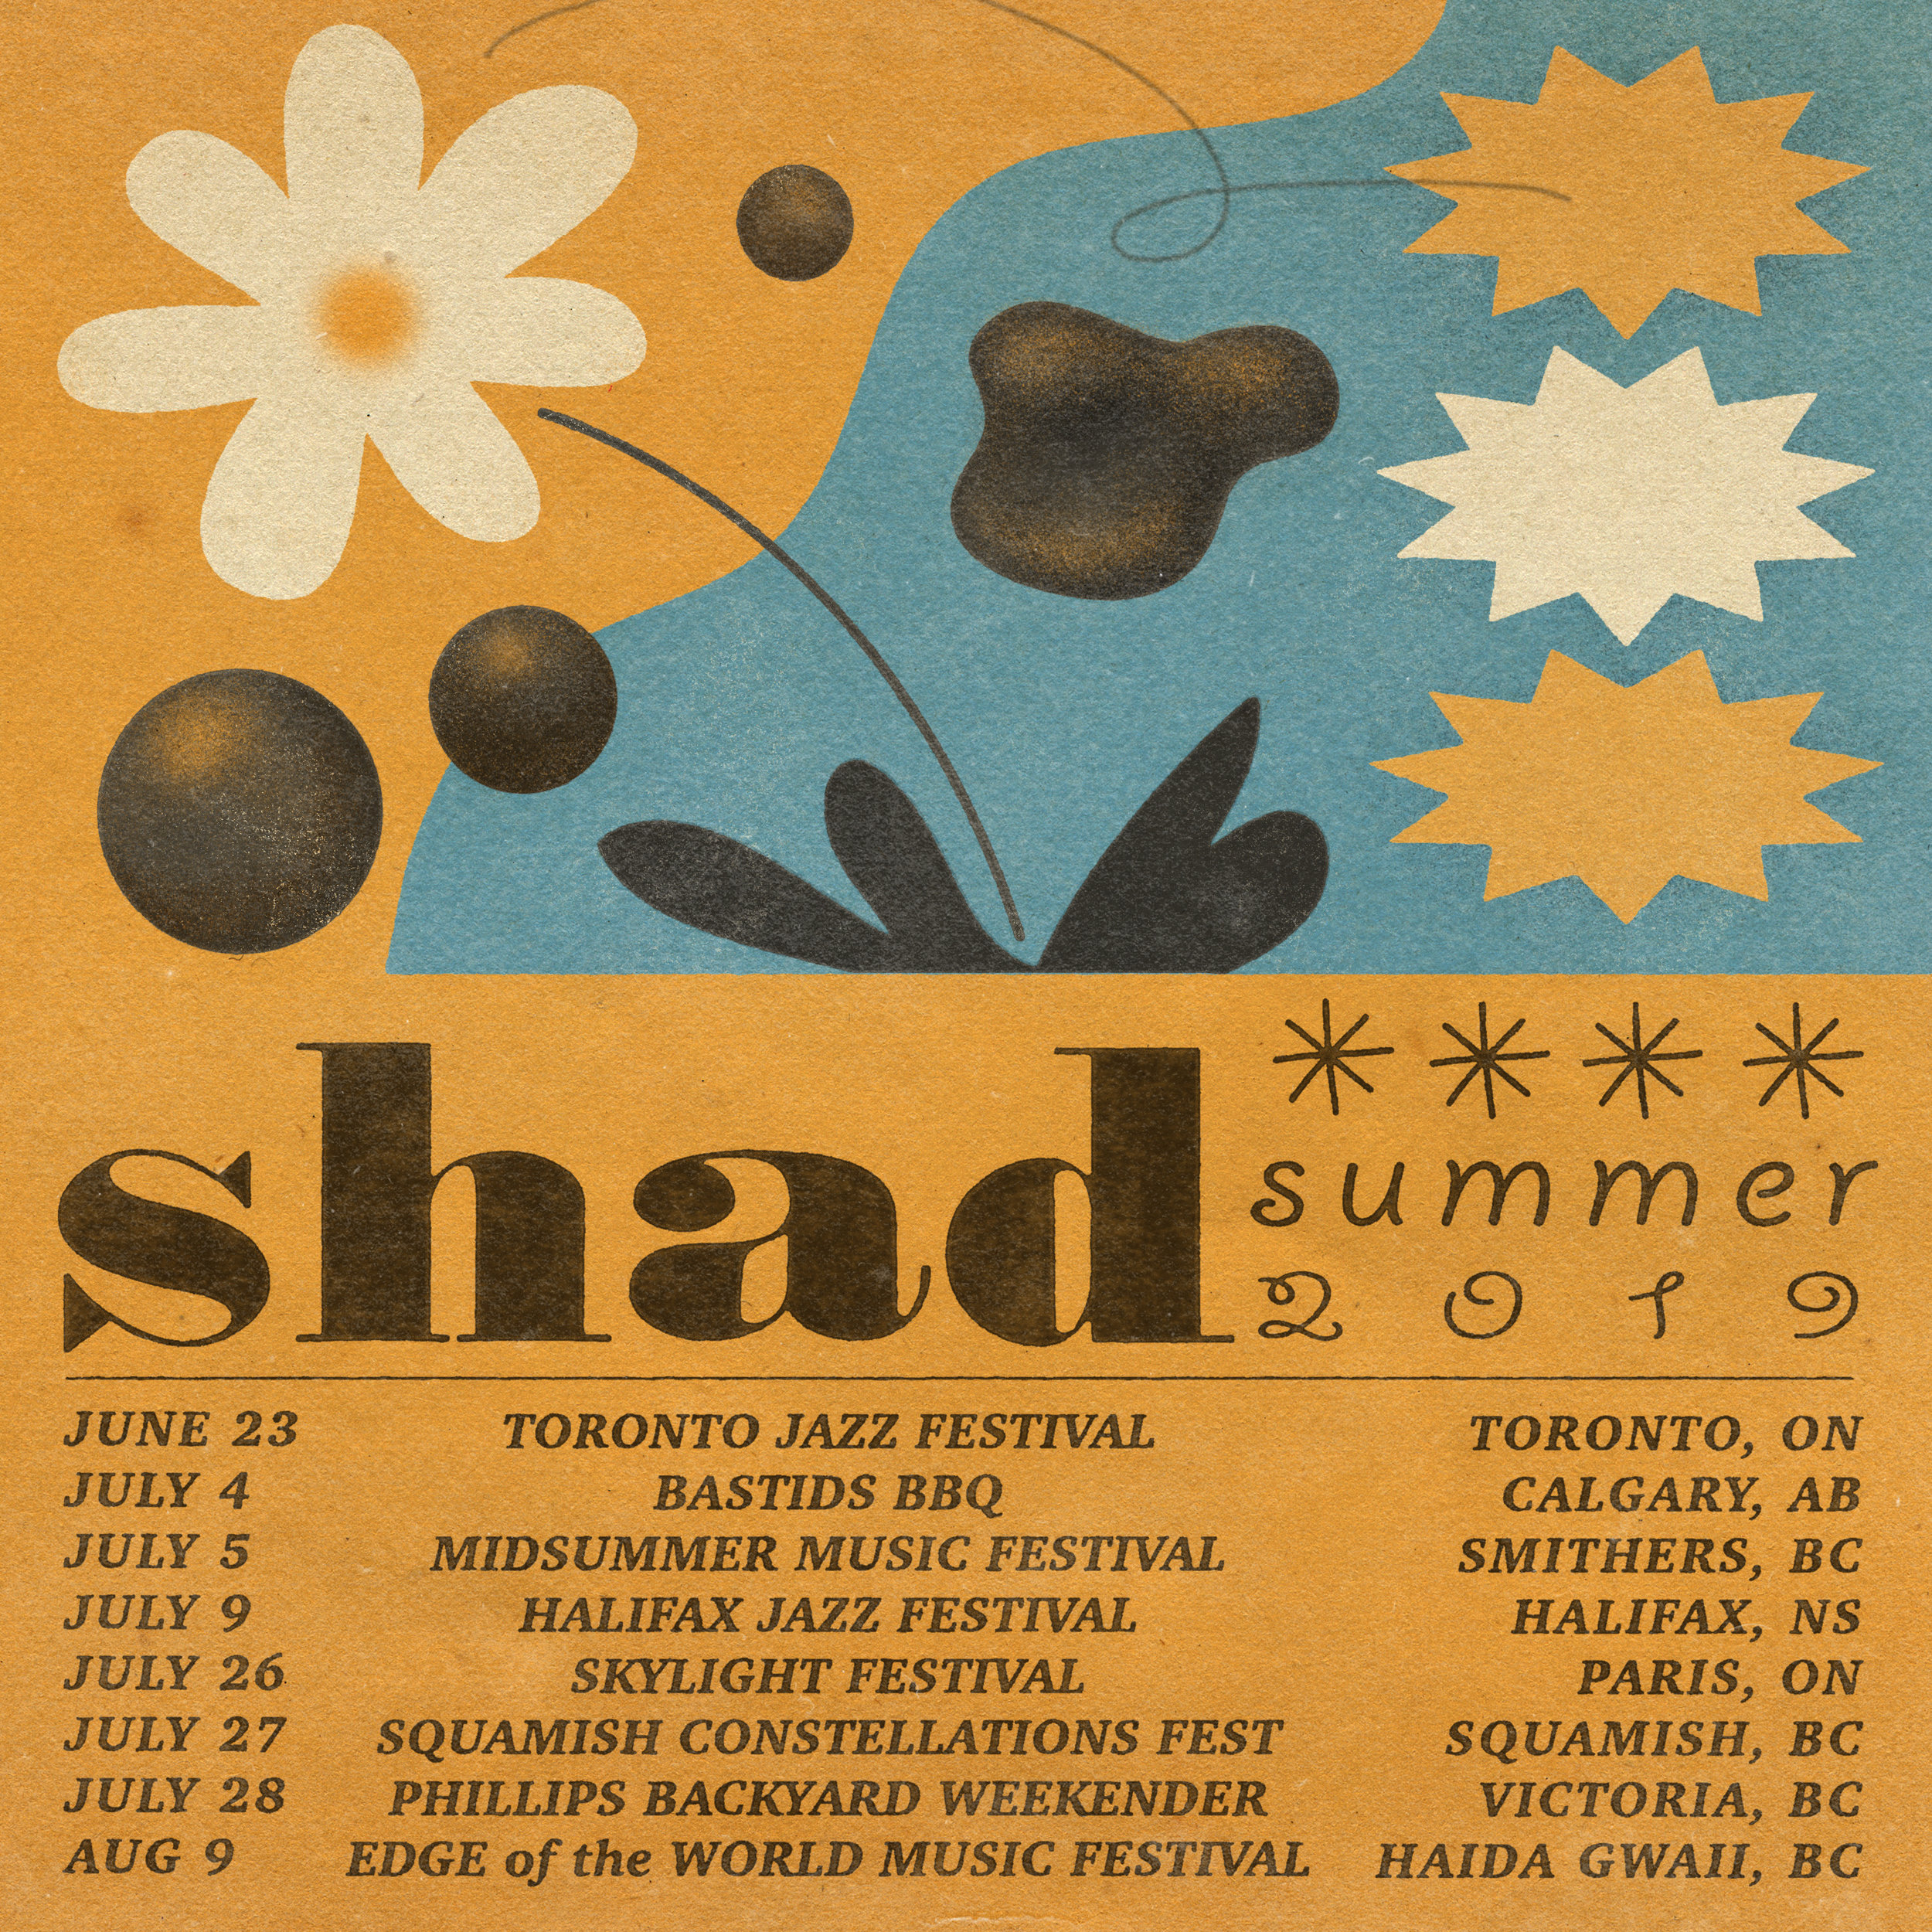 shad-poster1-final.jpg